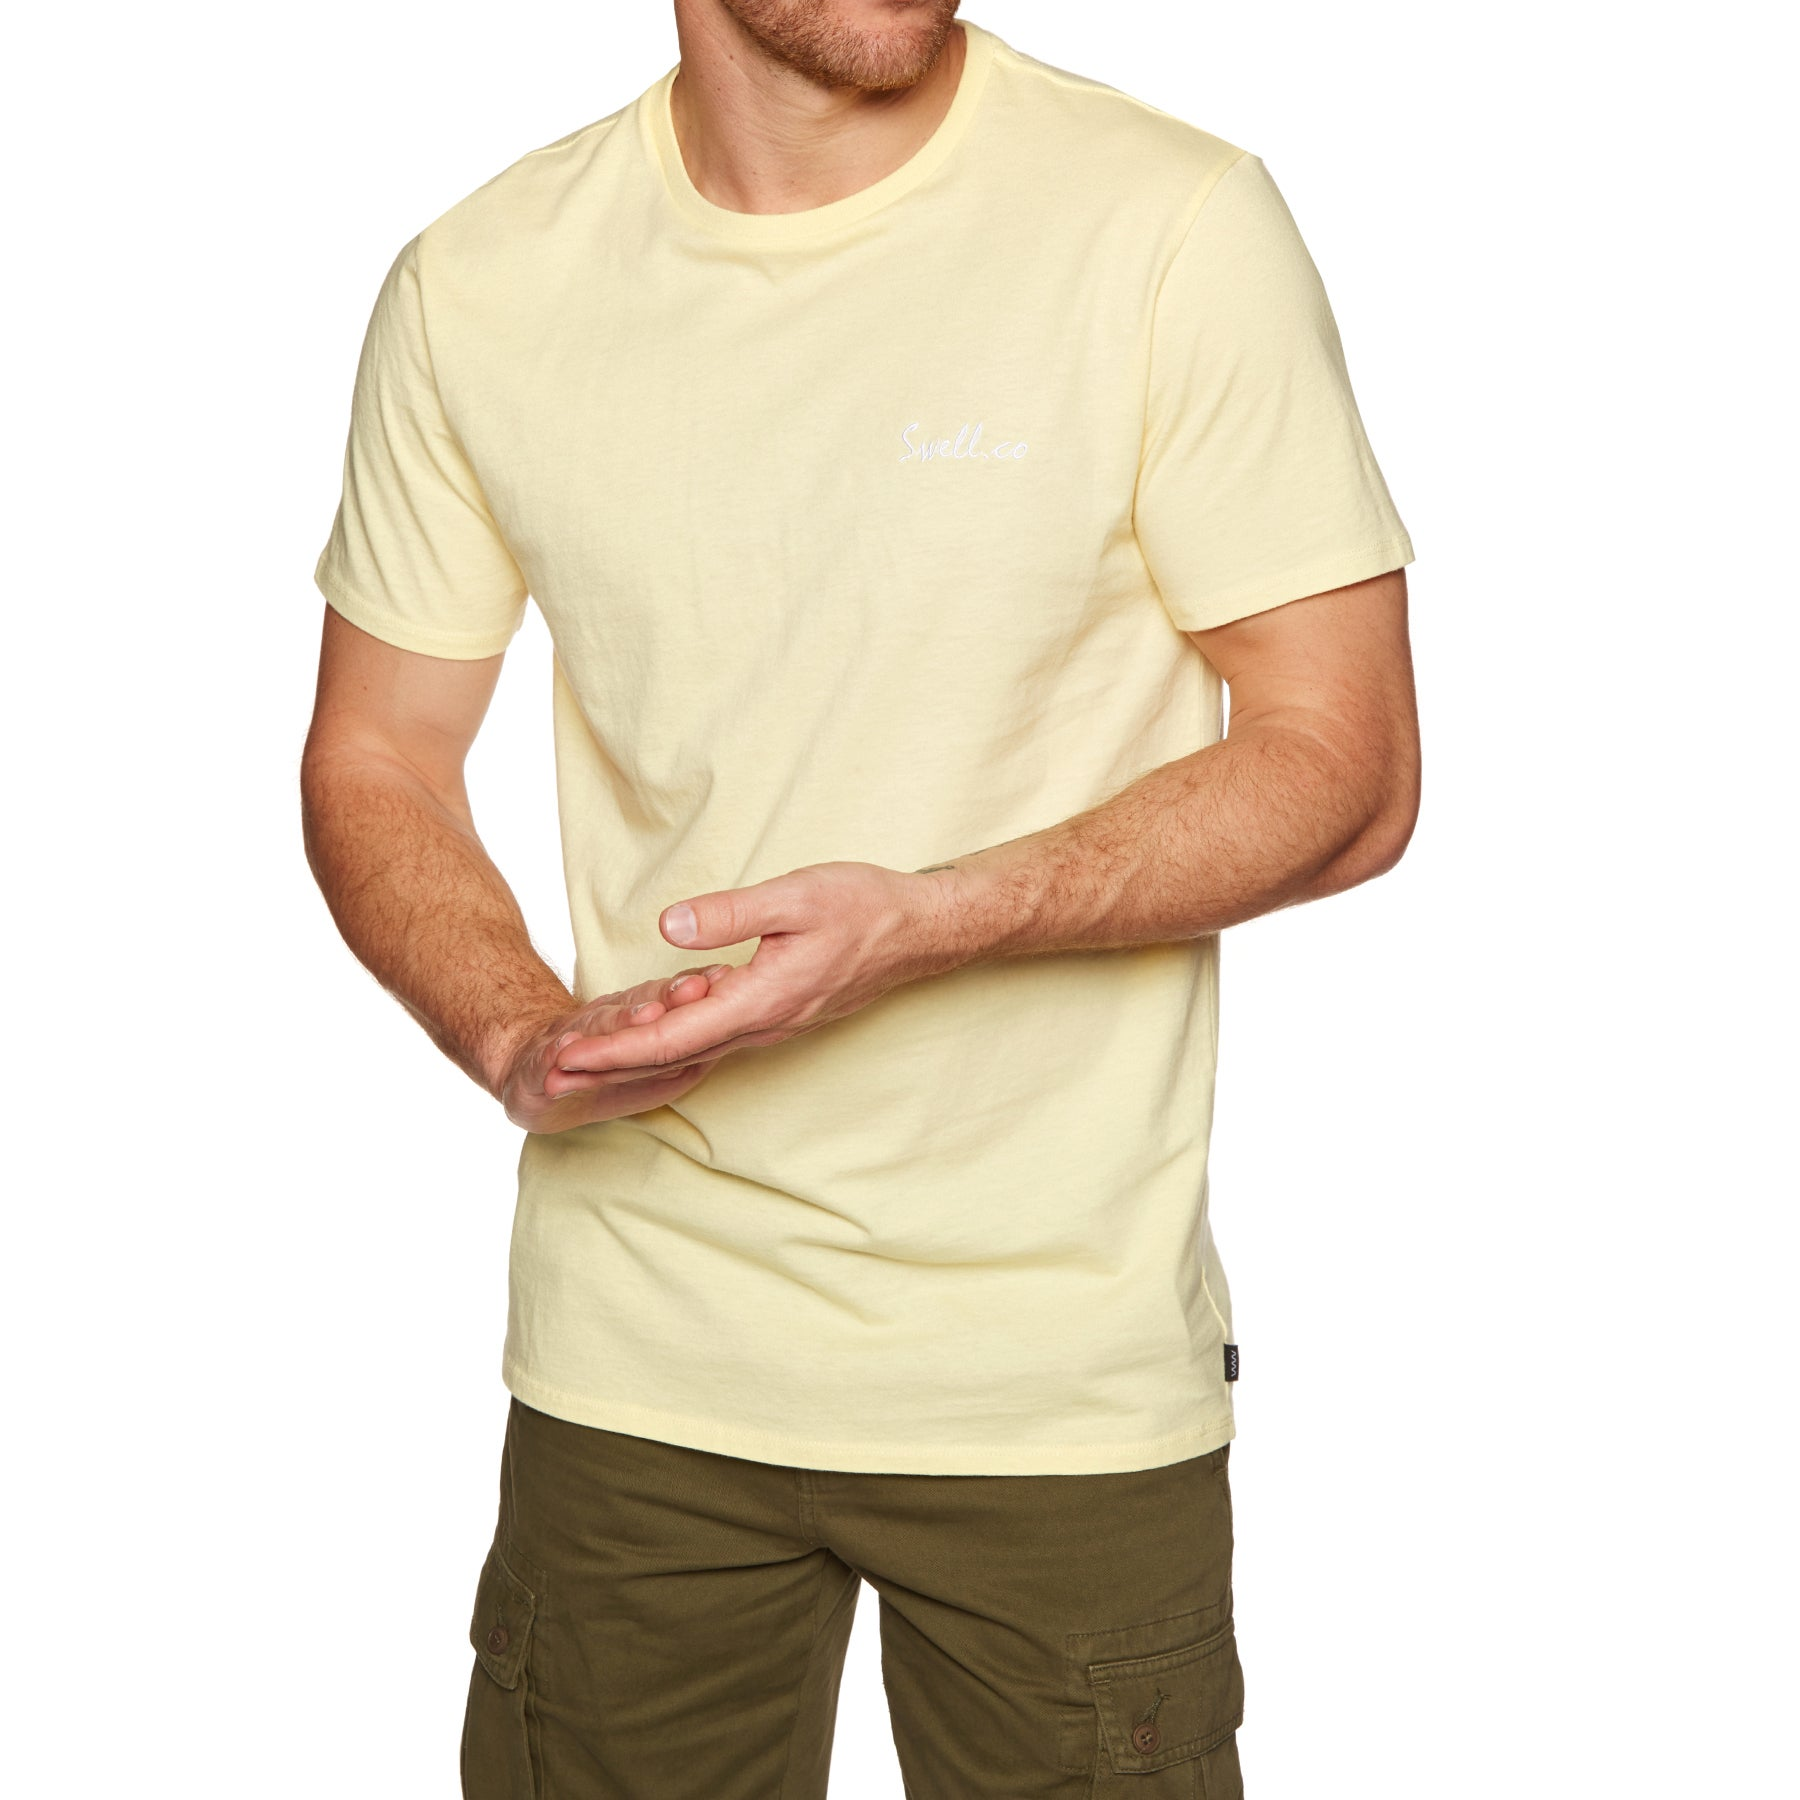 SWELL Swellco Short Sleeve T-Shirt - Washed Yellow